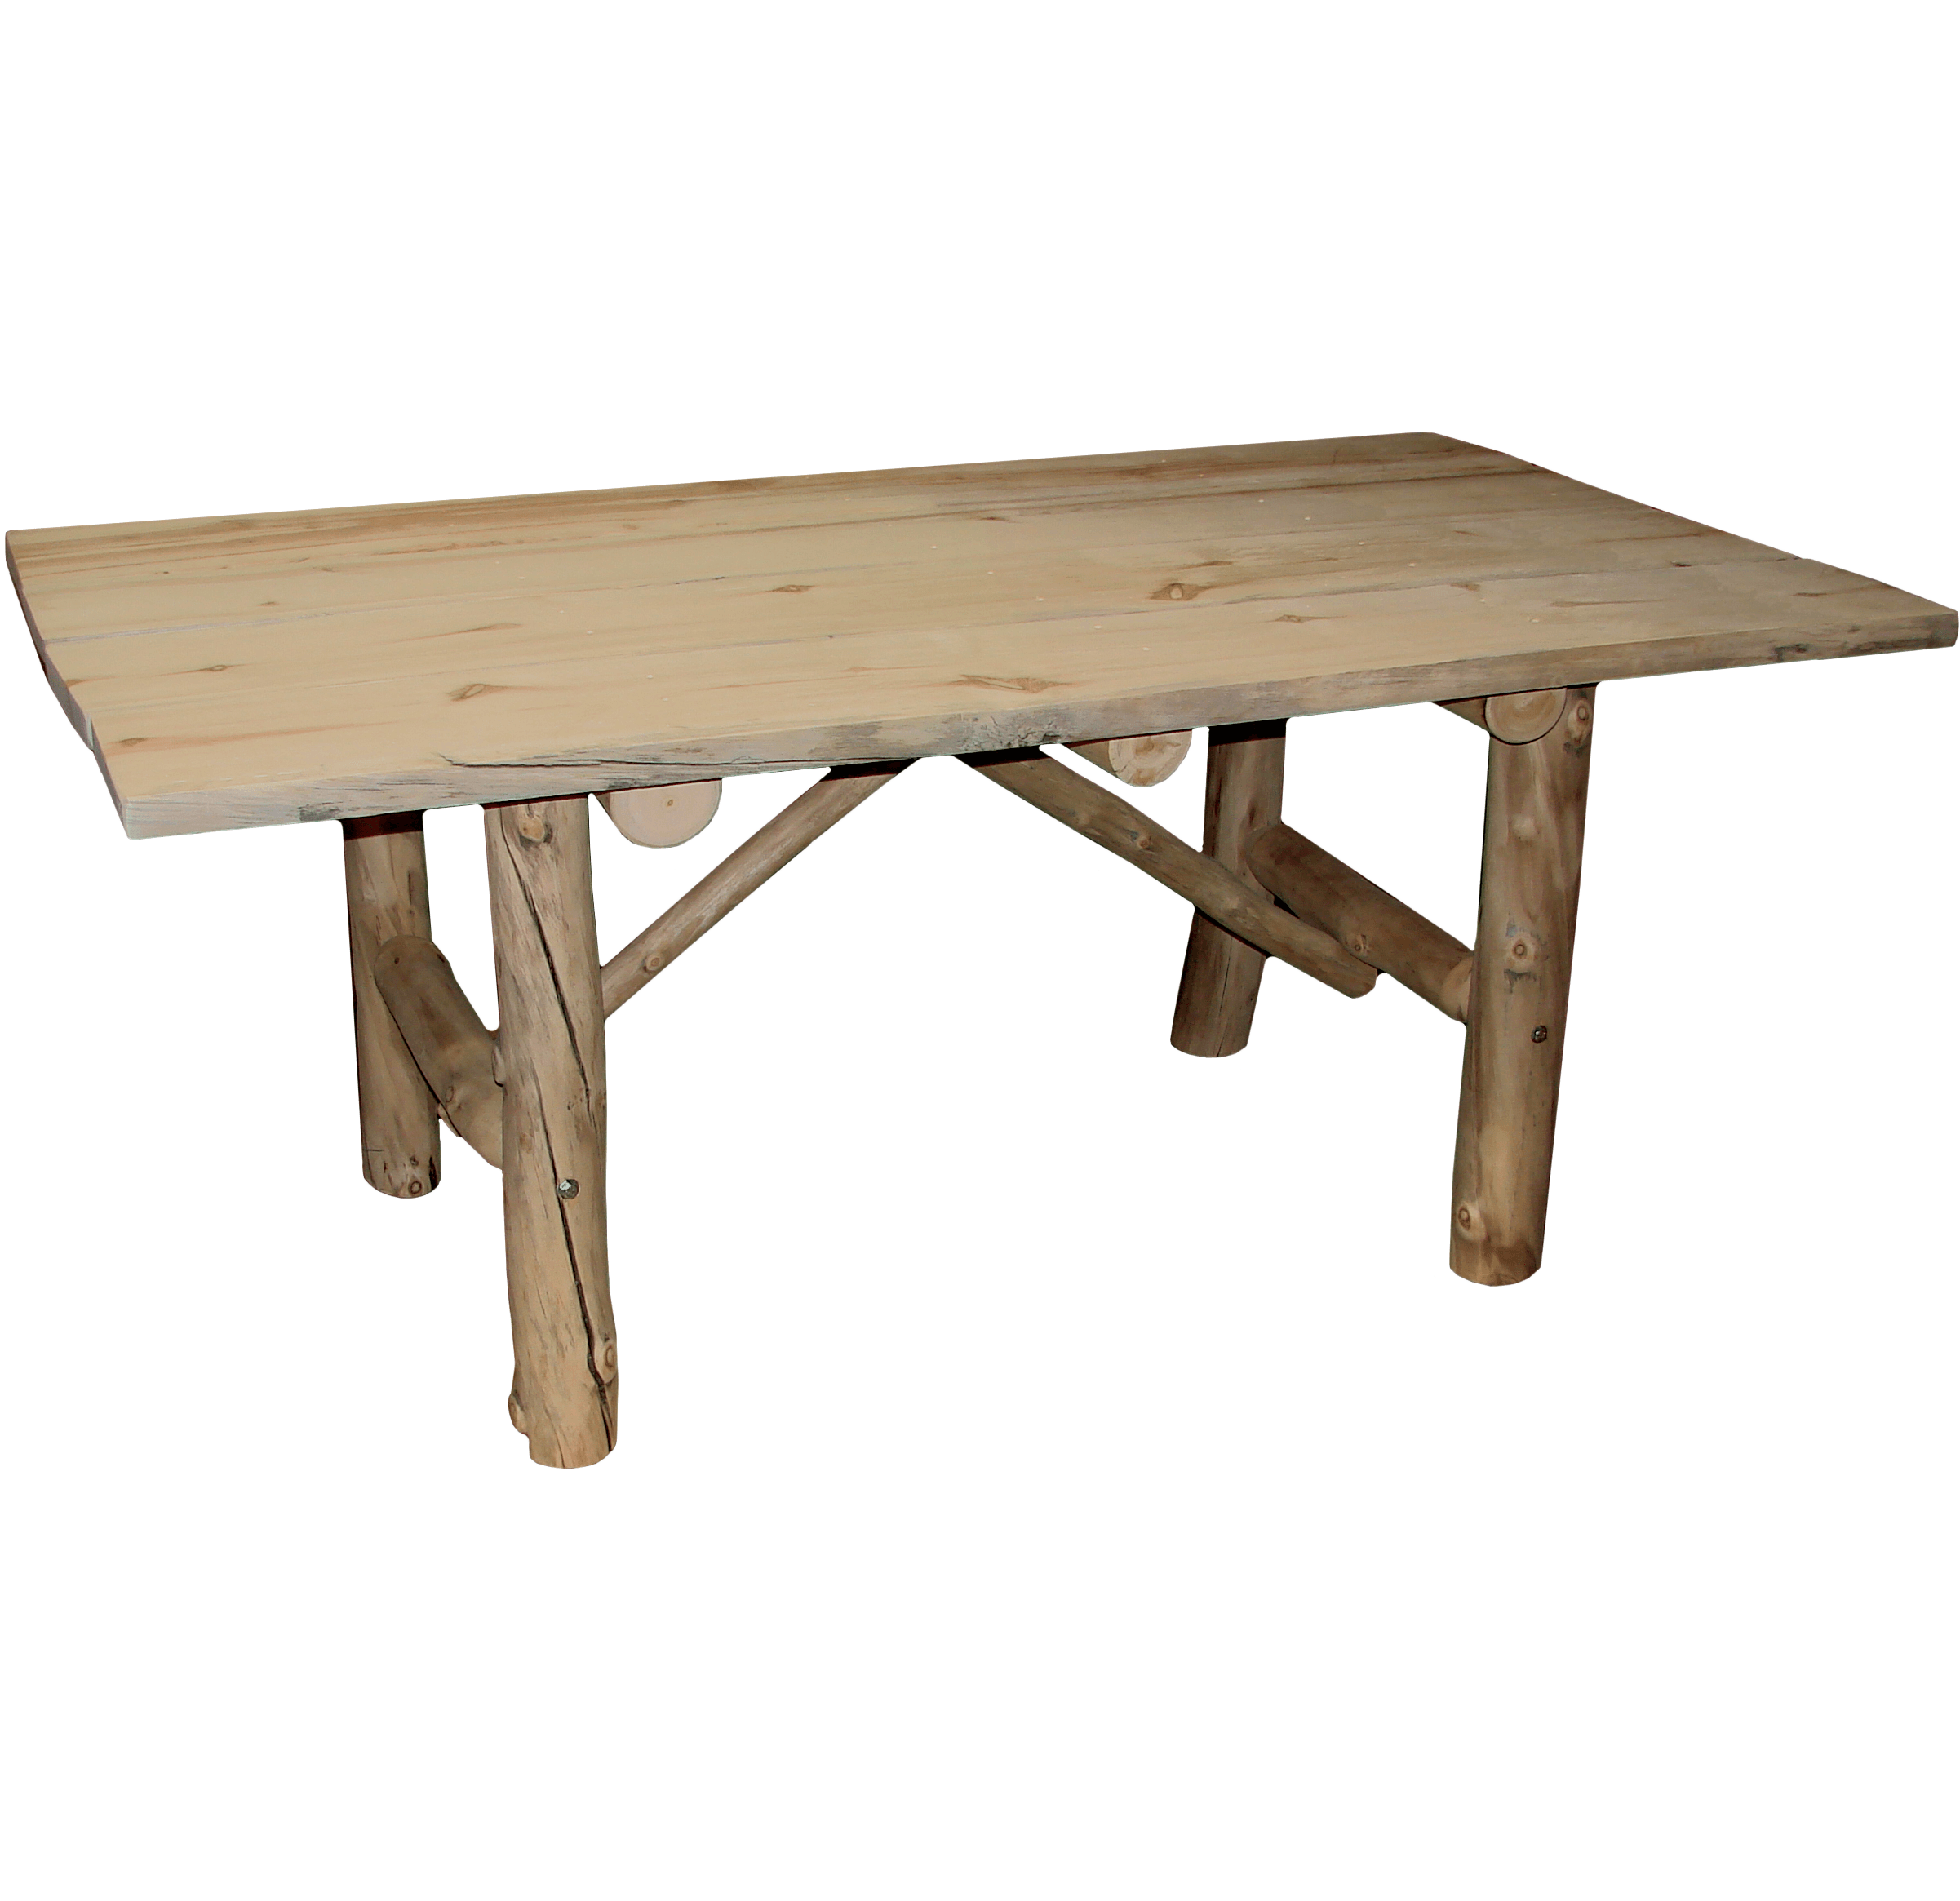 Aspen Log Picnic Table With Benches Rustic Log Furniture